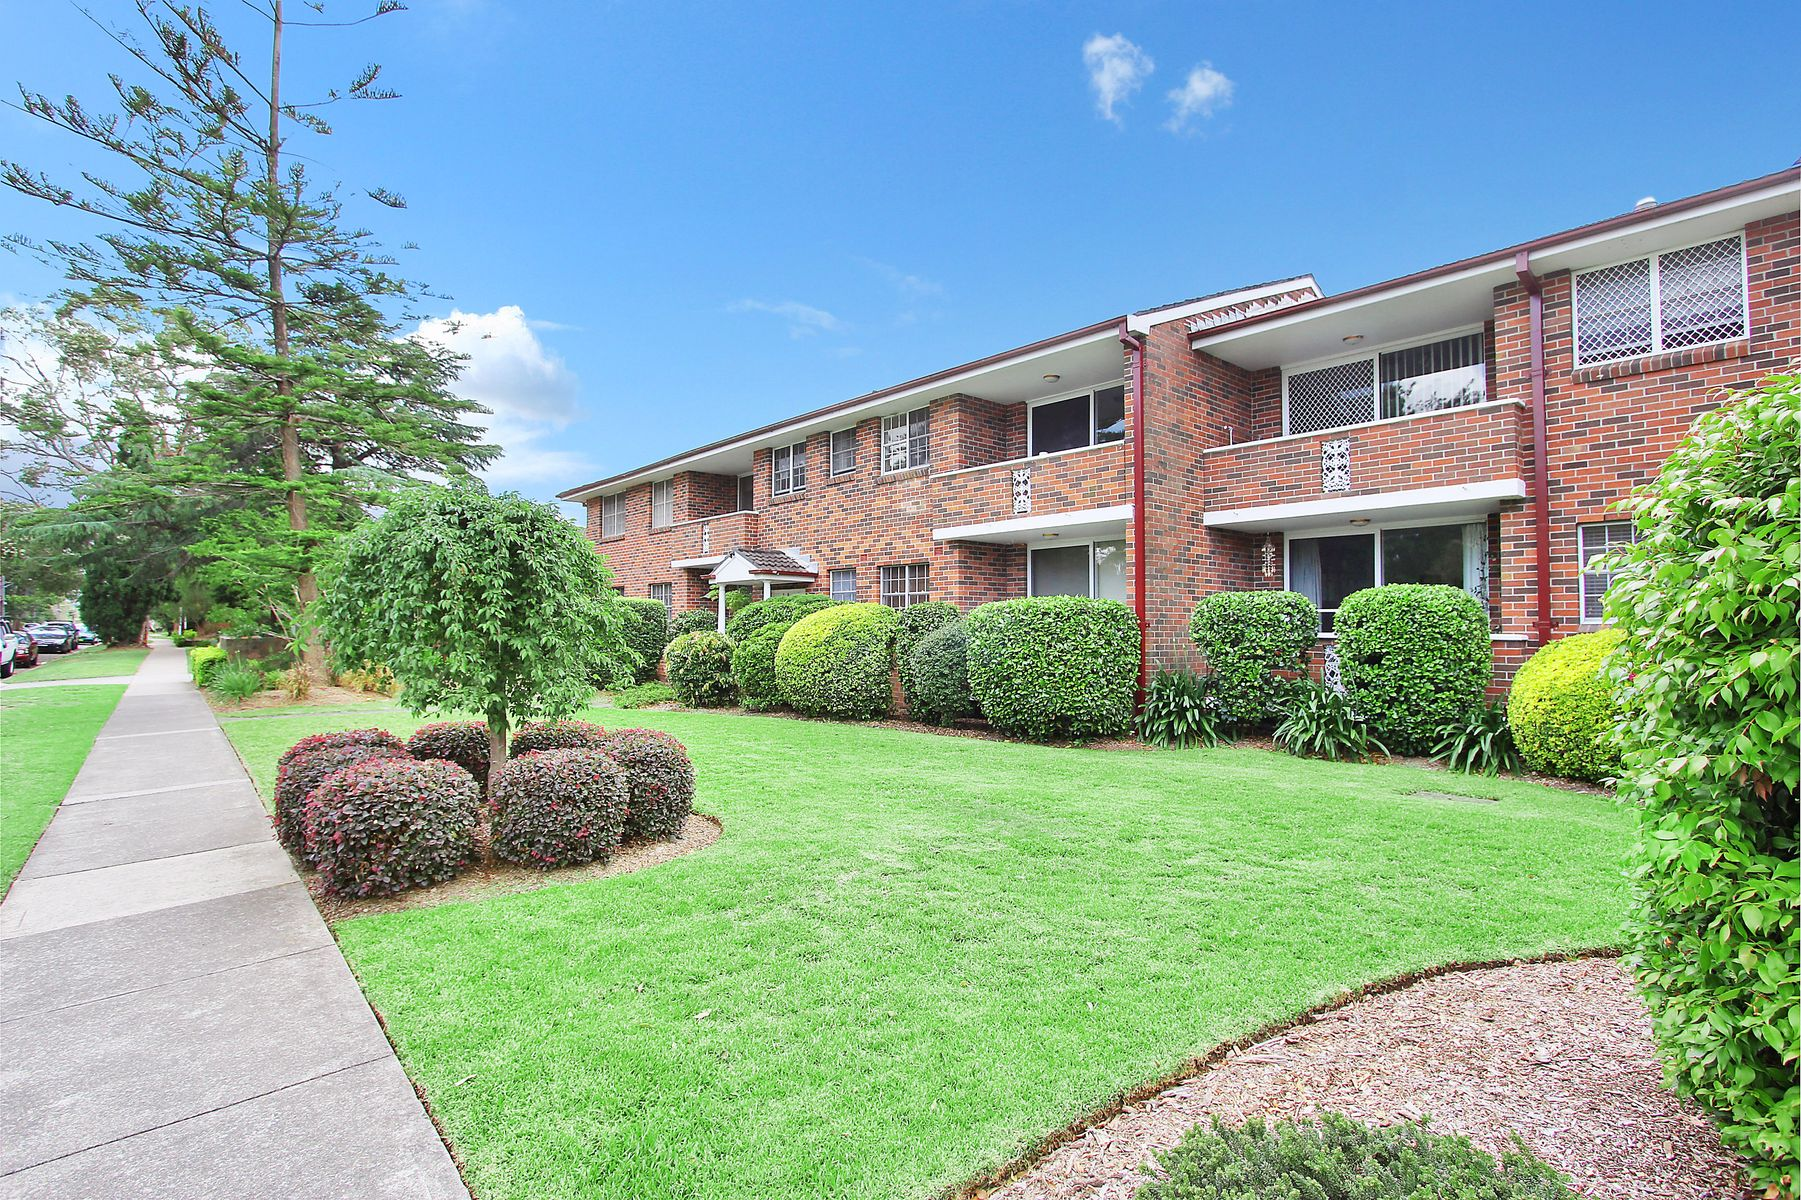 8/207 Waterloo Road, Marsfield, NSW 2122